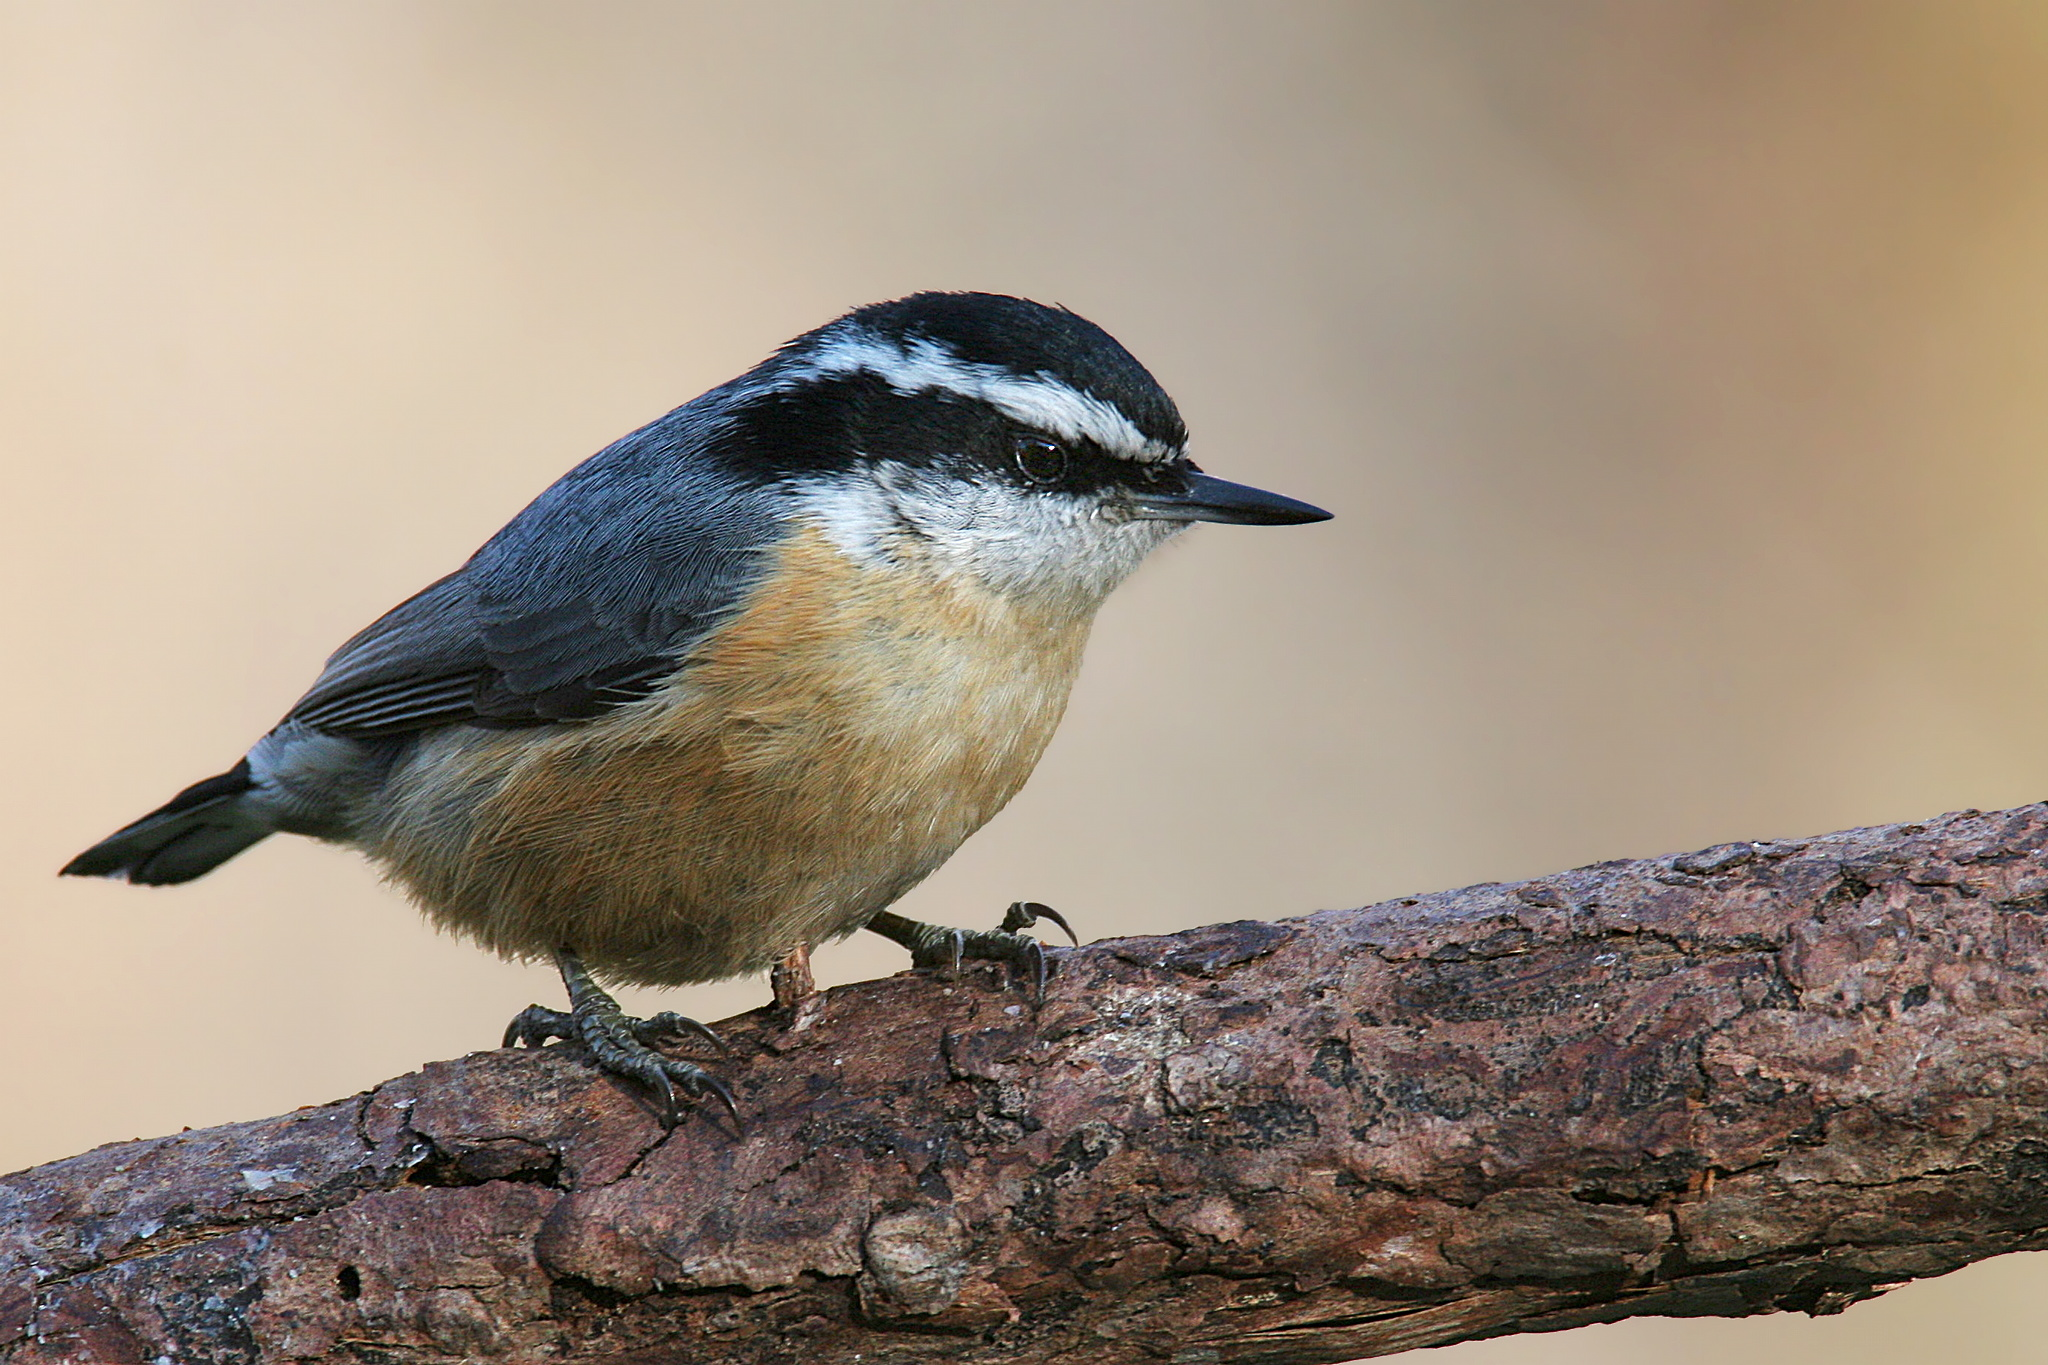 File:Red-breasted-Nuthatch.jpg - Wikimedia Commons